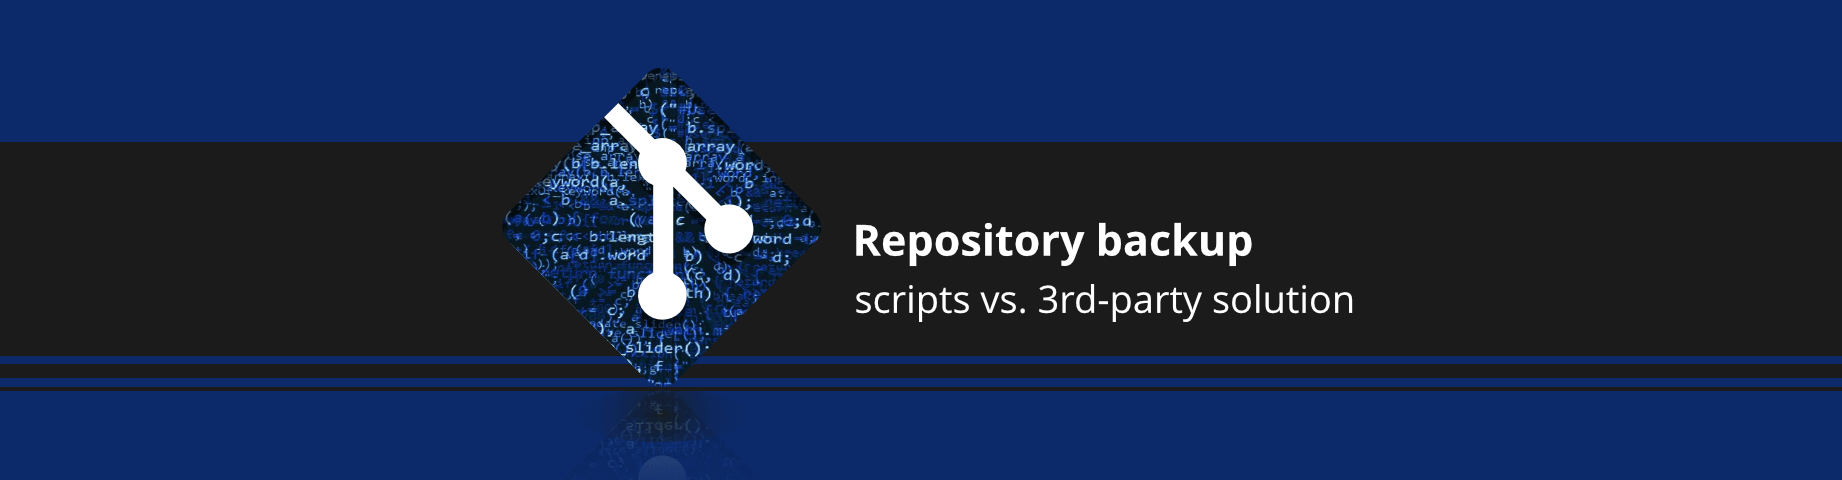 Repository backup, scripts vs. 3rd-party solution